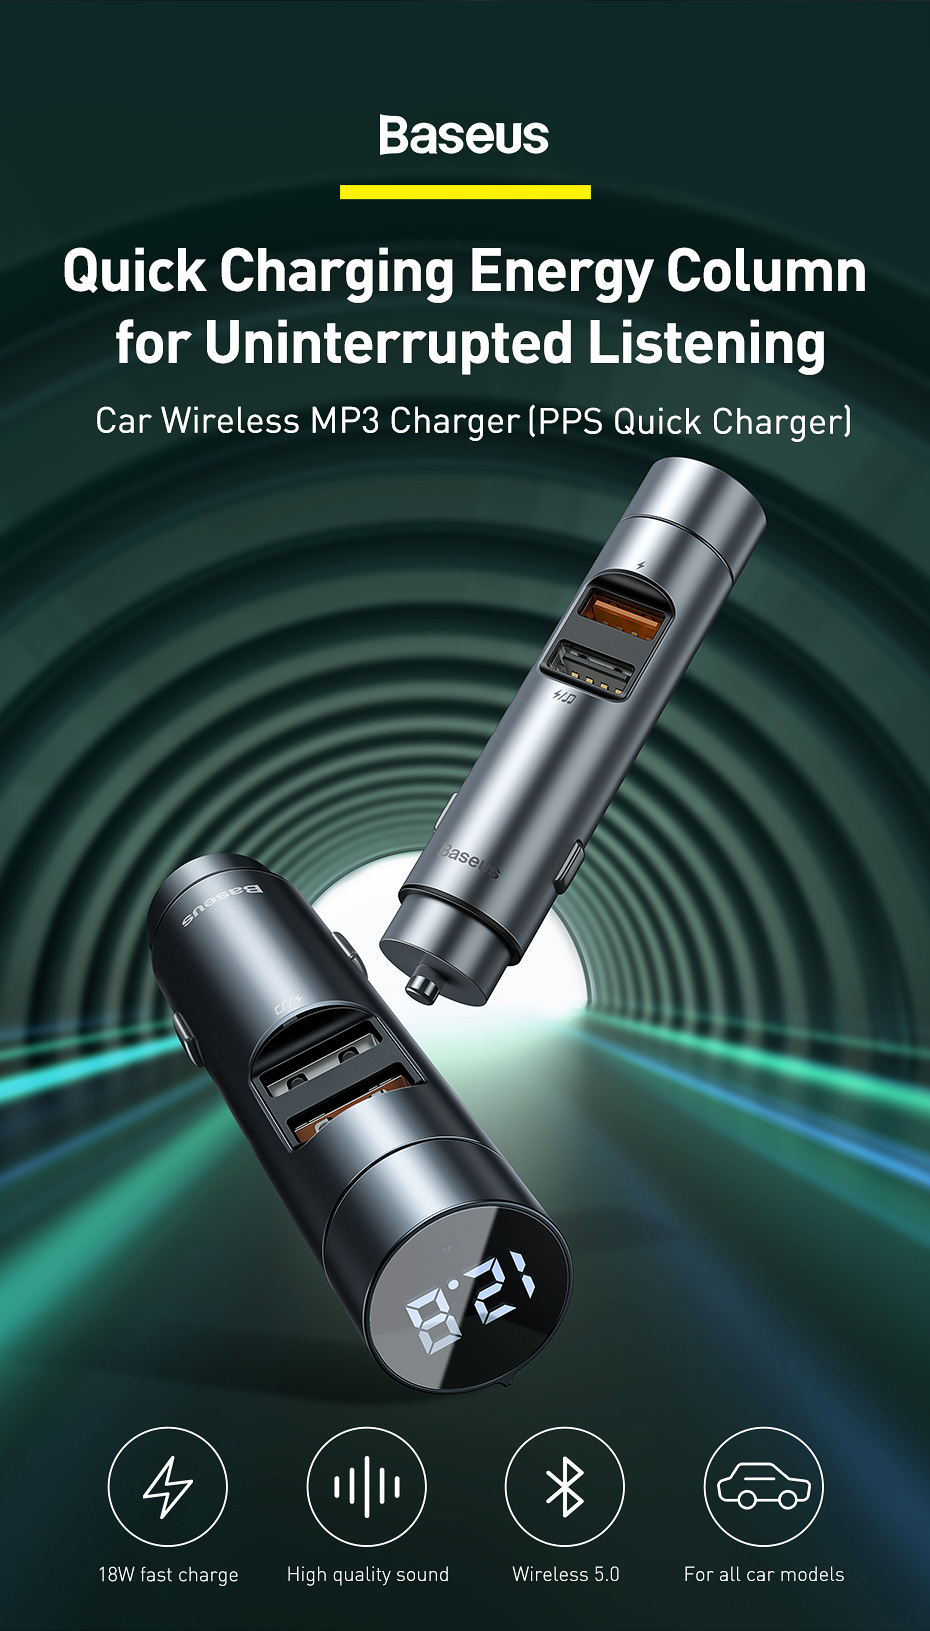 Baseus 18W Car Charger with MP3 Player